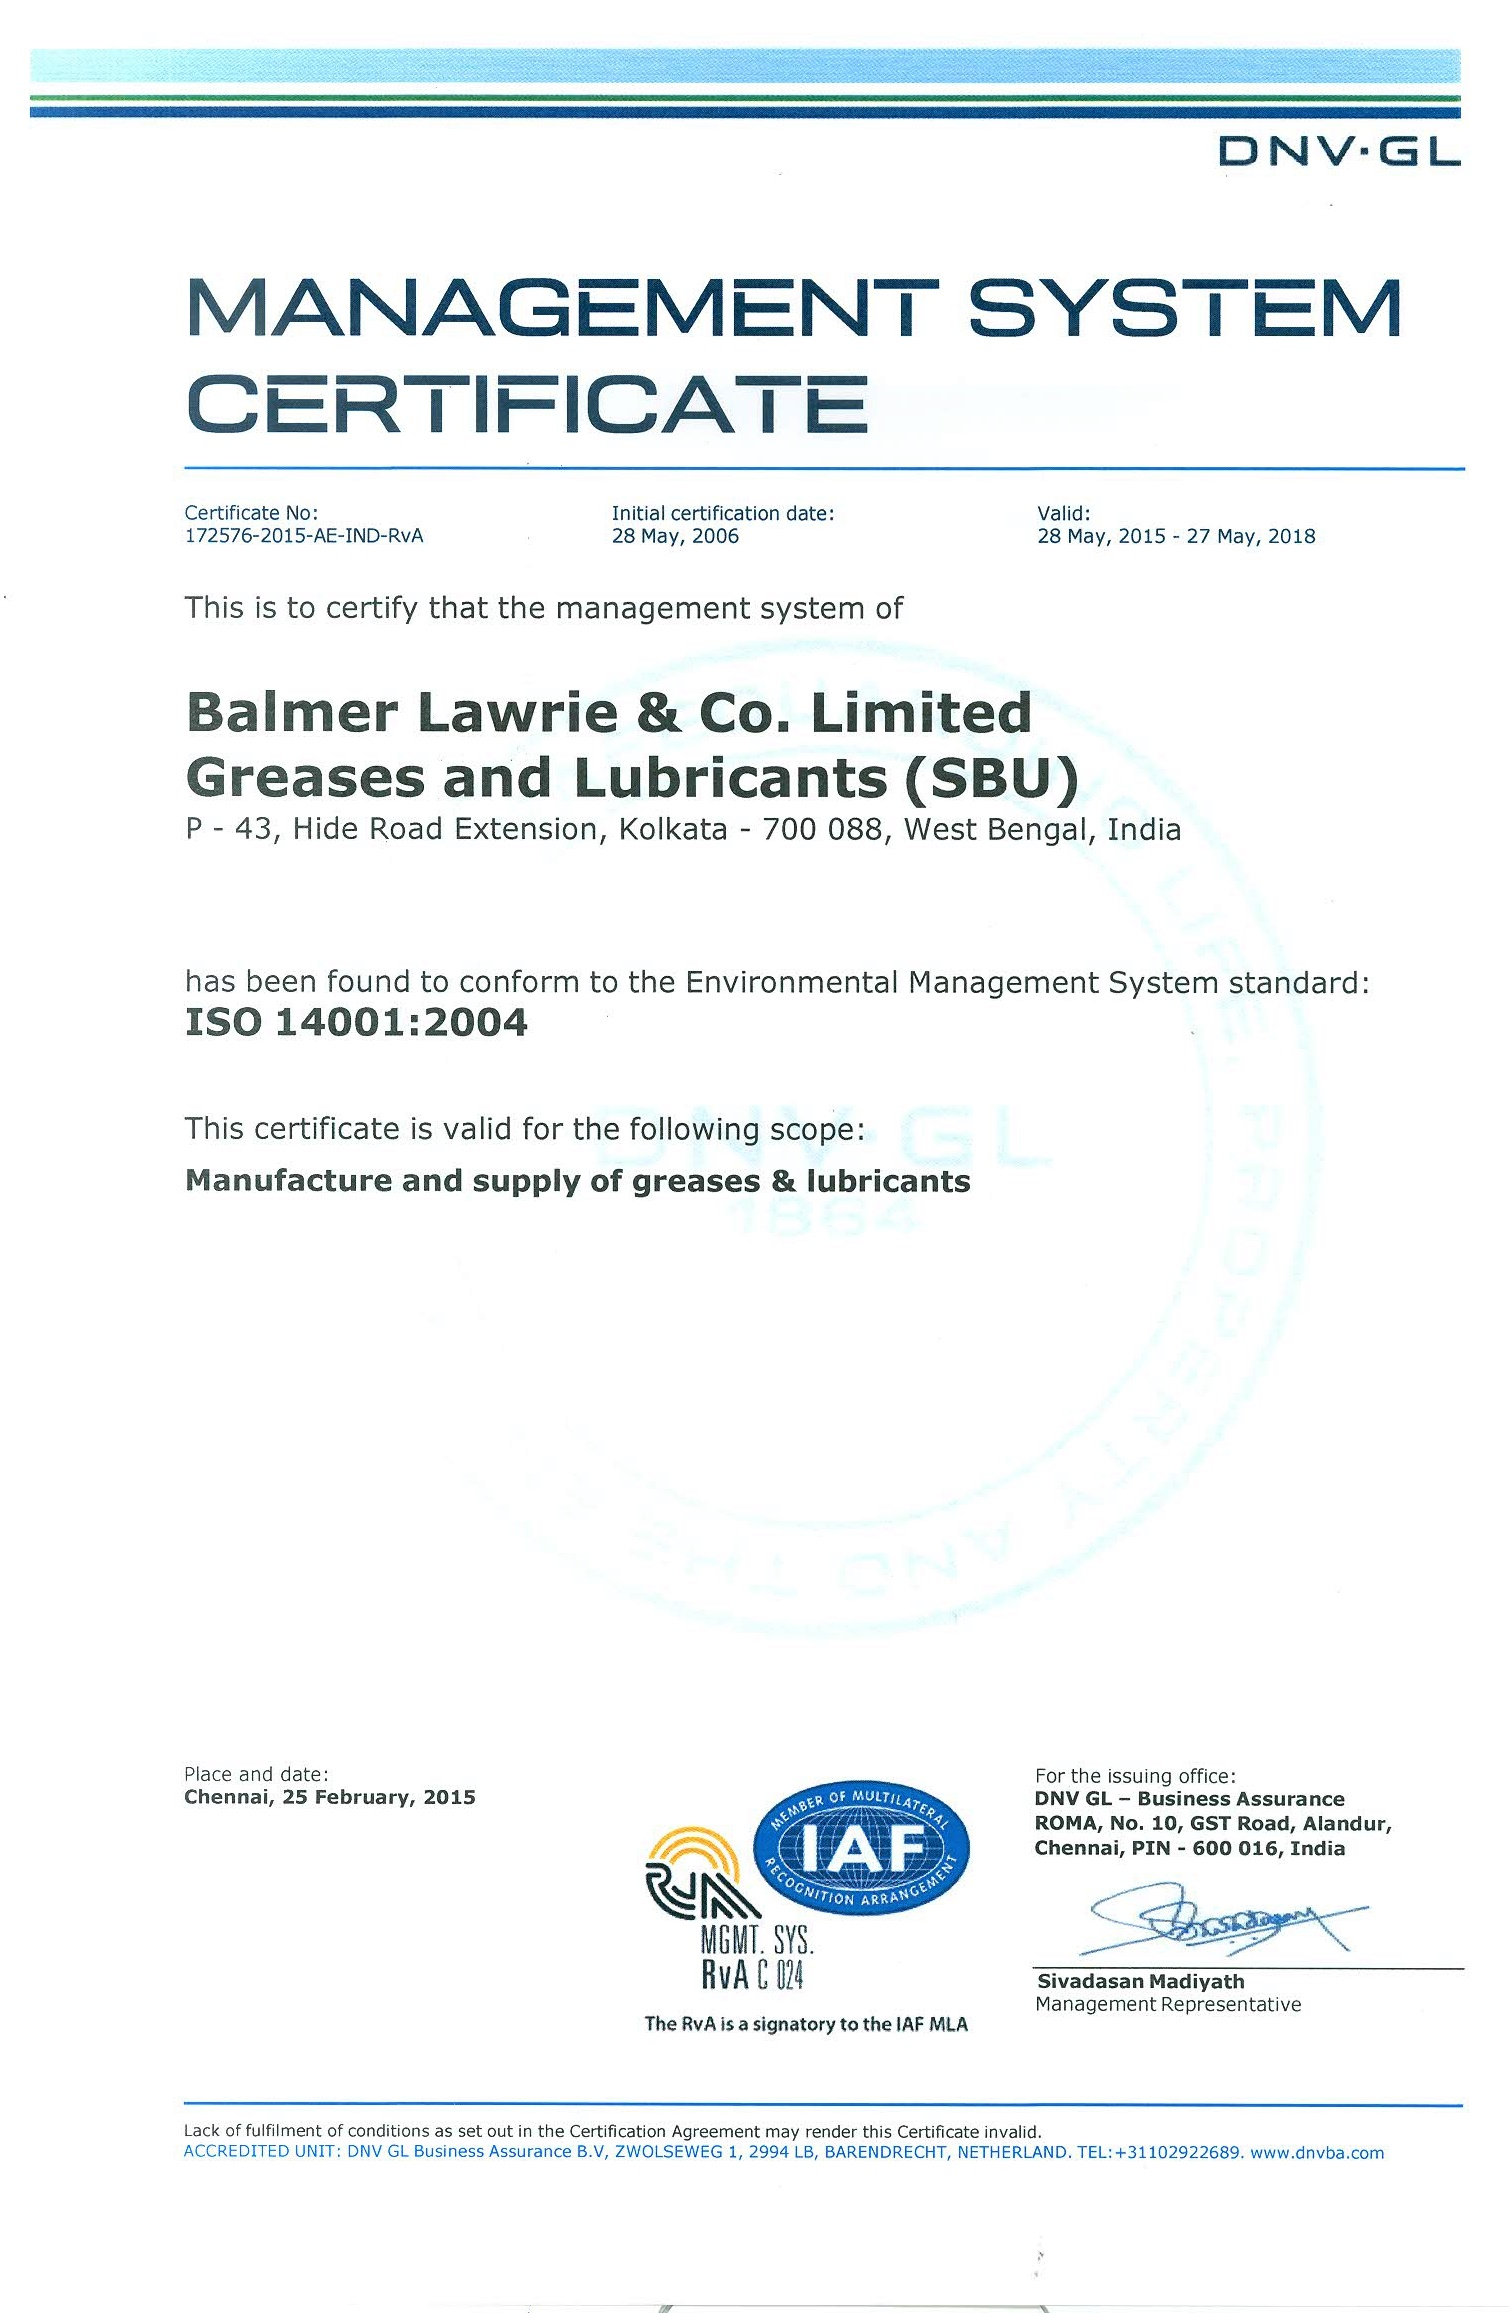 ISO certification 14001:2004